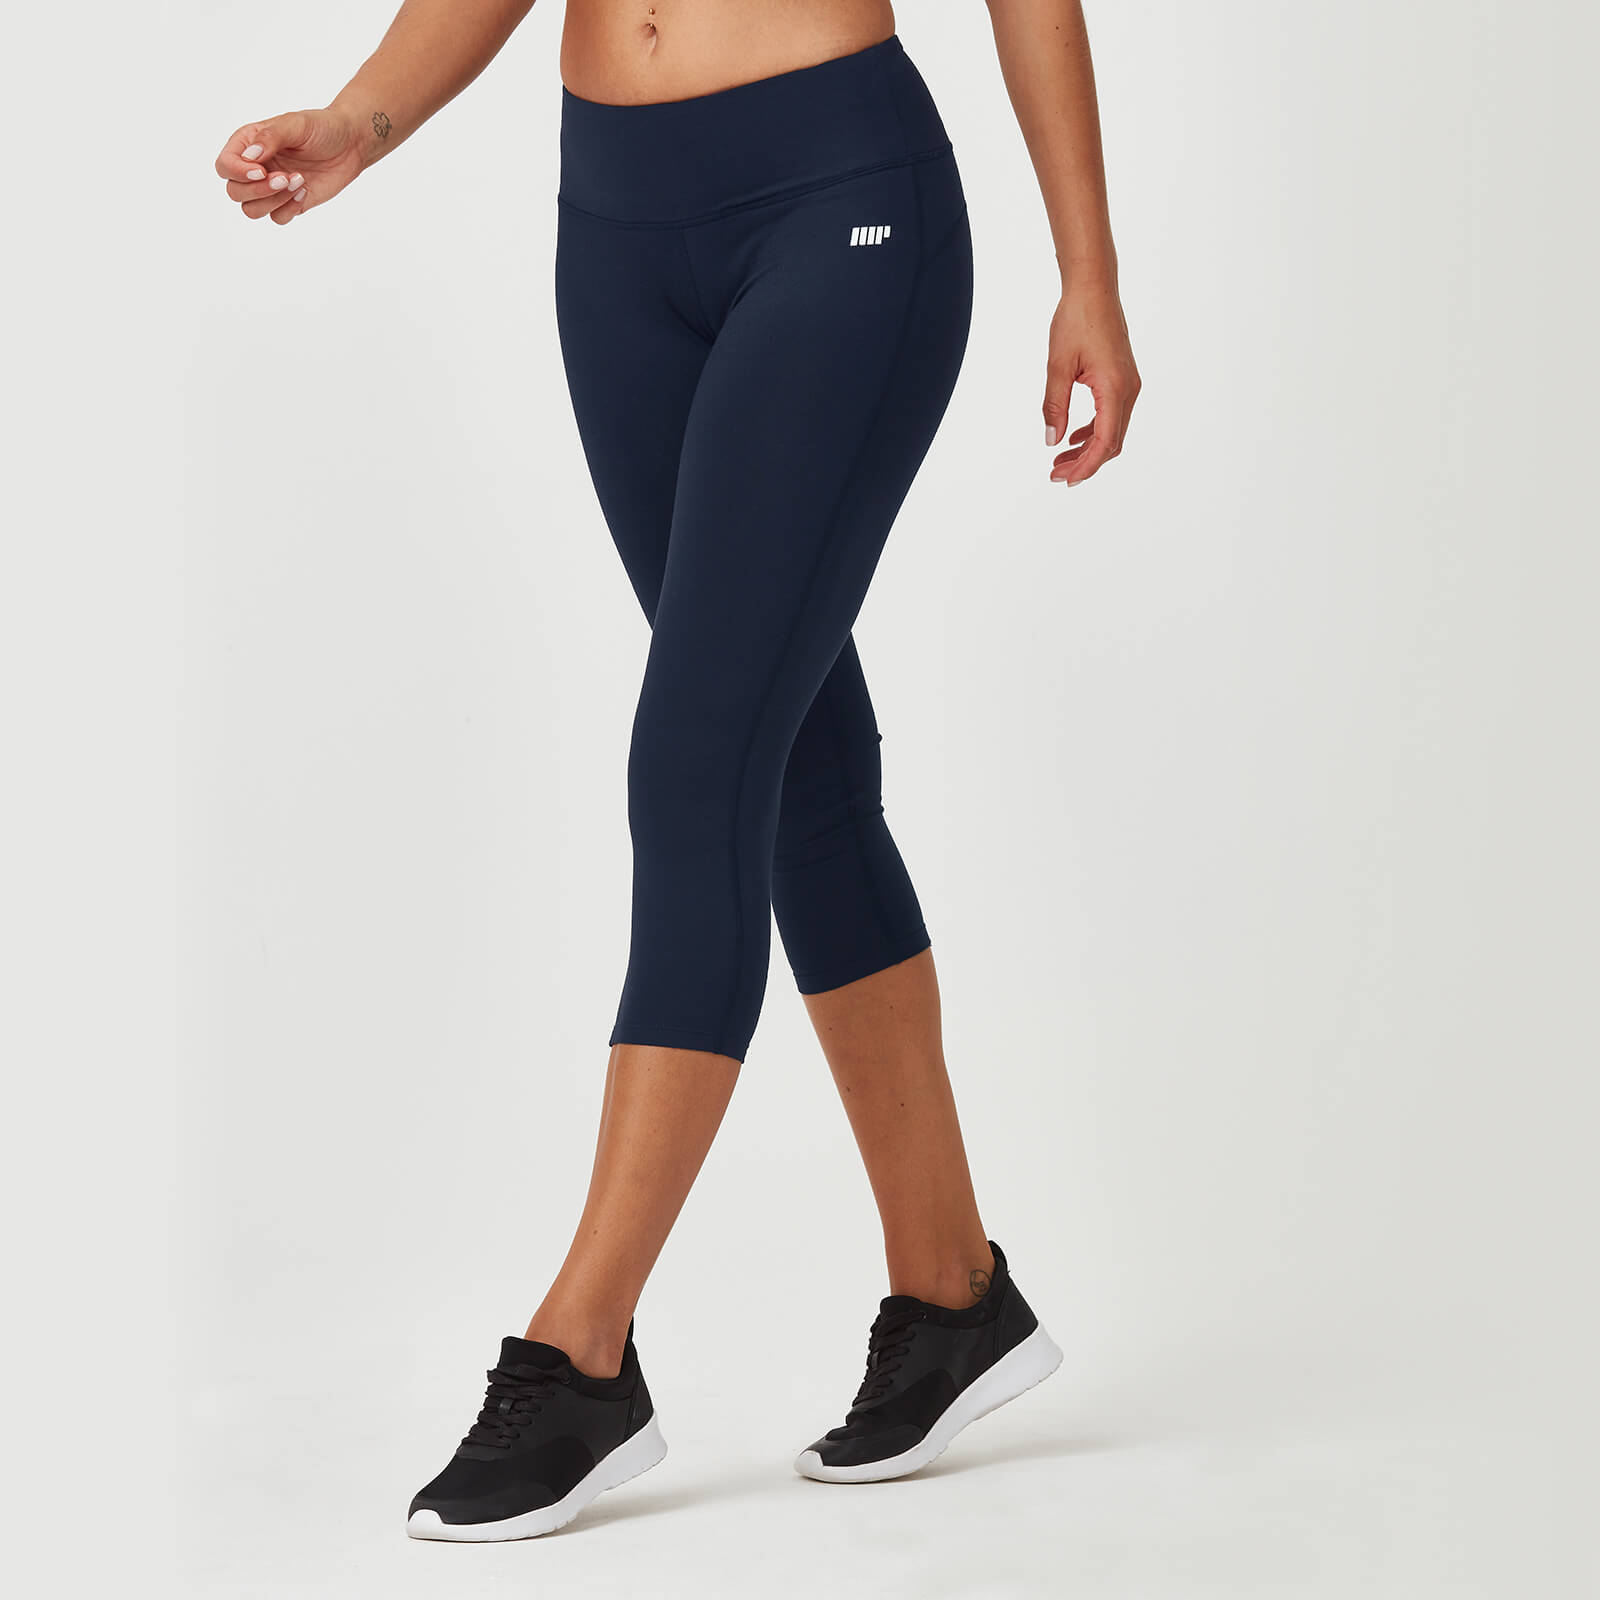 Myprotein Classic Heartbeat 7/8 Leggings - Navy - XS